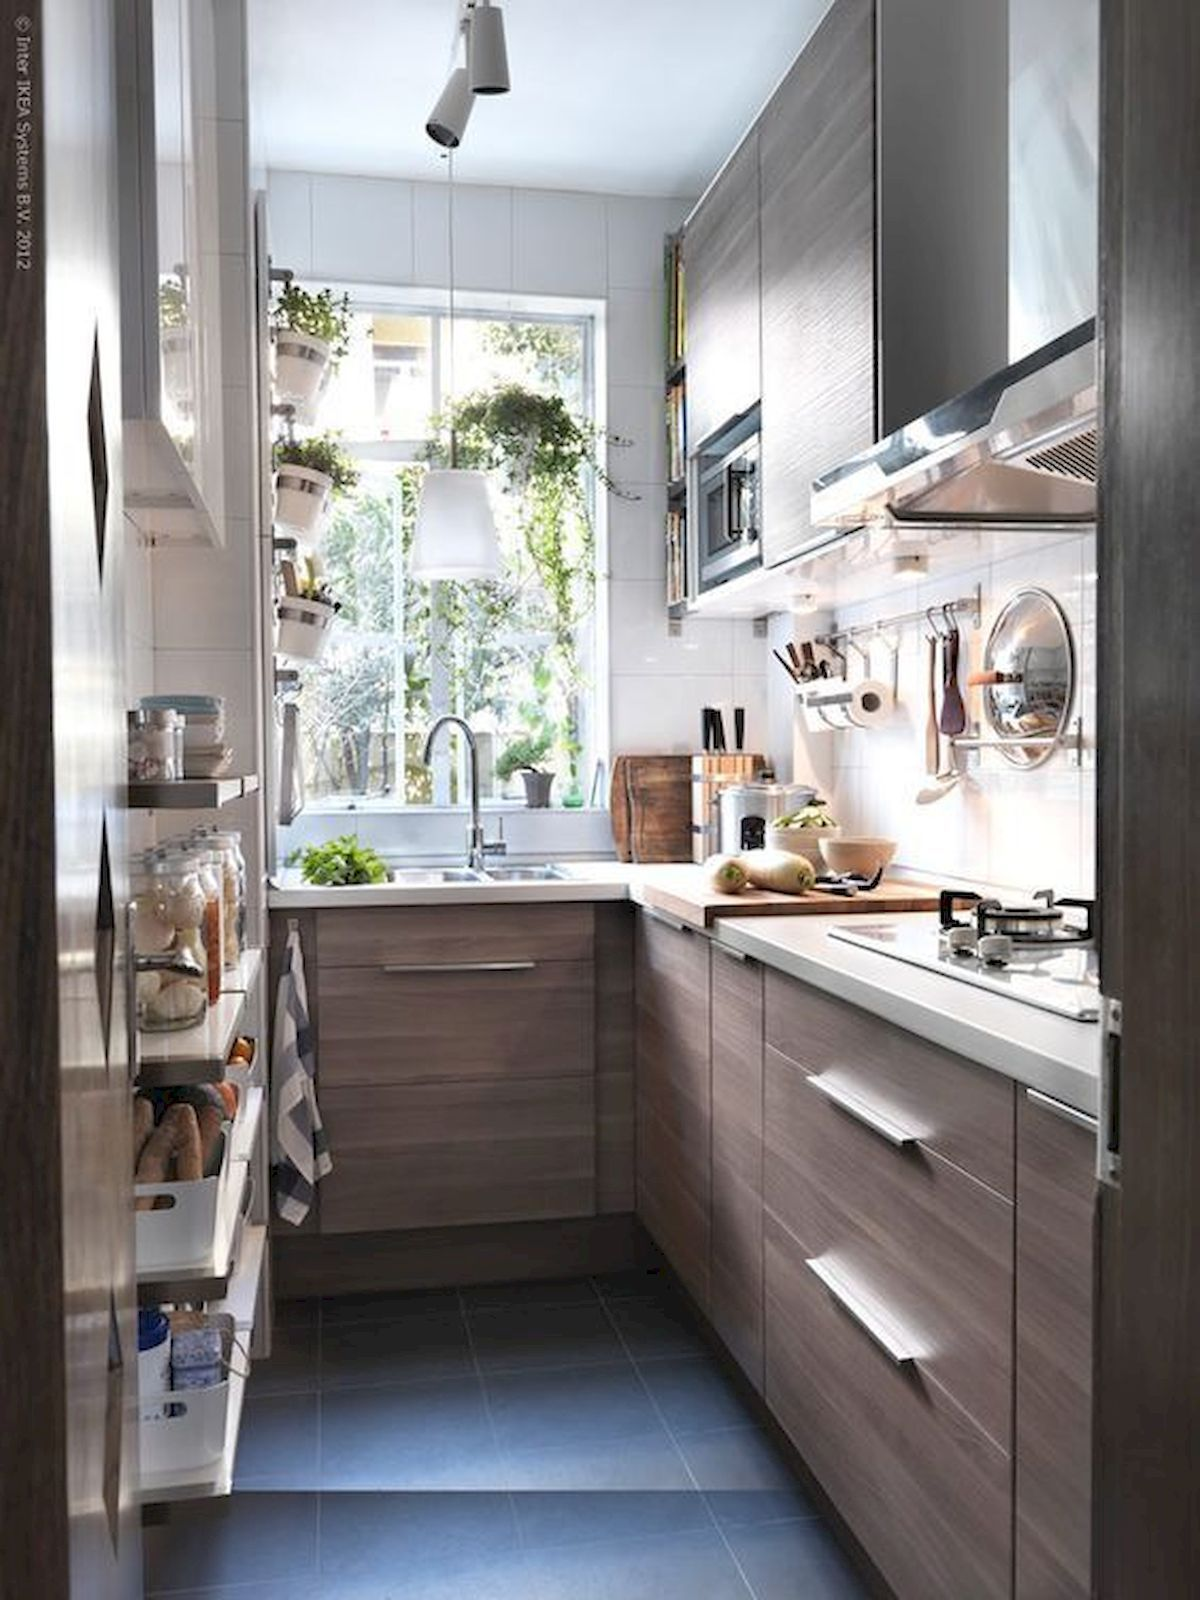 50 best small kitchen design ideas and decor jenny on extraordinary kitchen remodel ideas id=91490